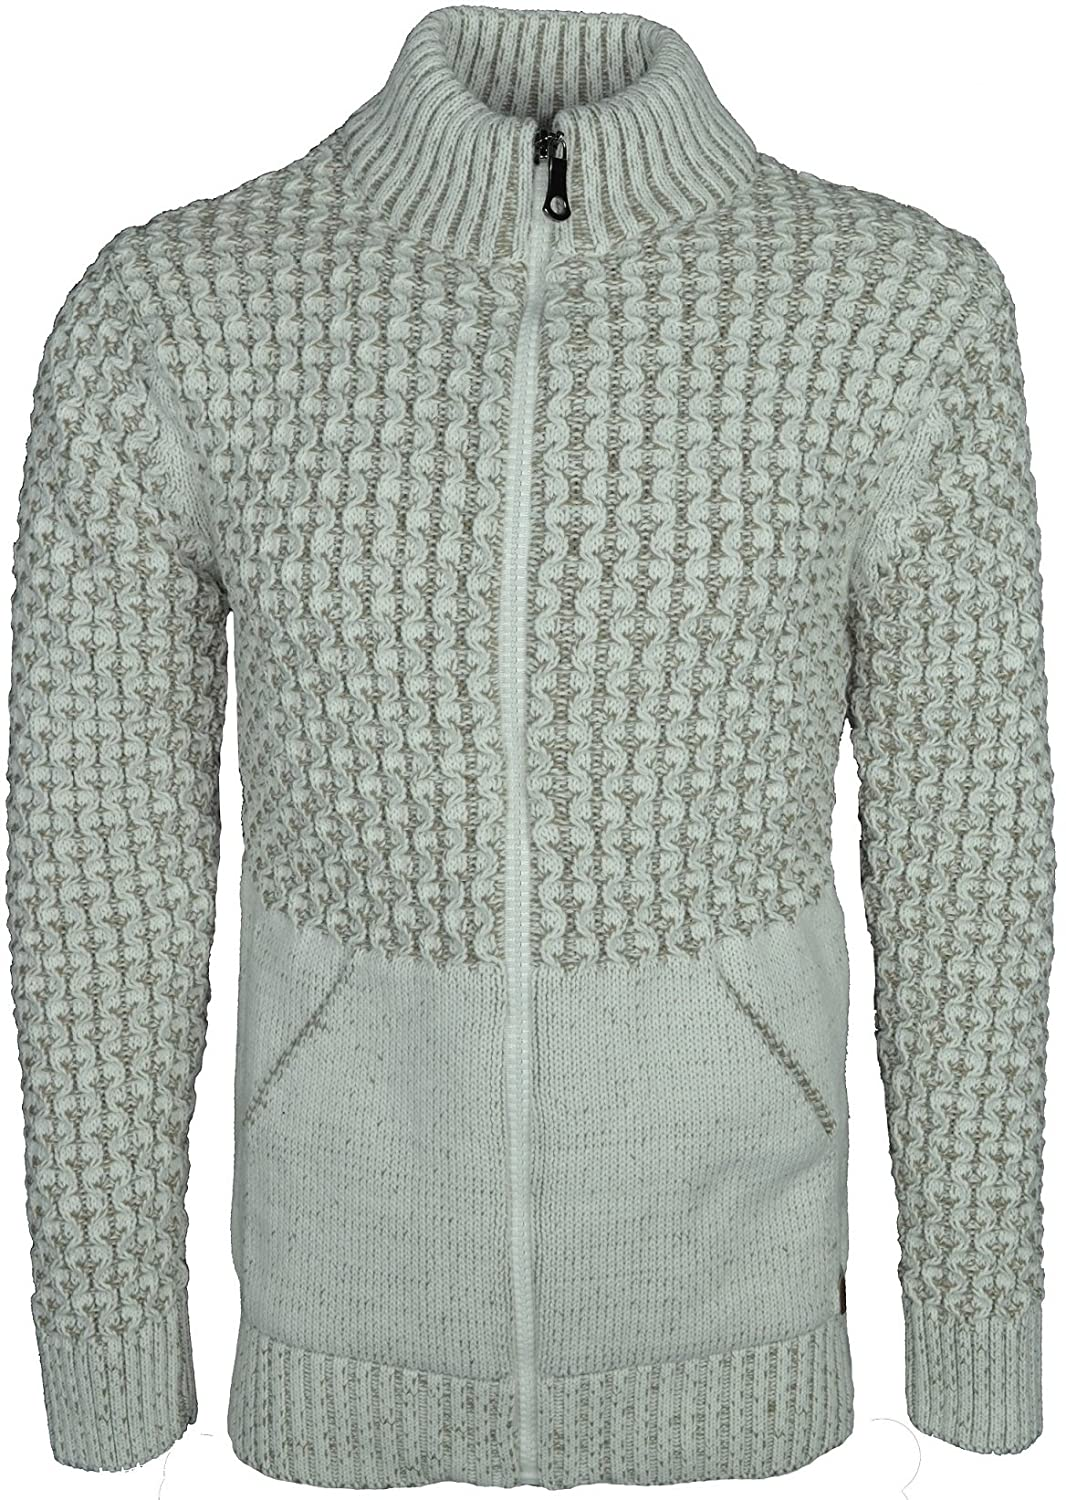 Mens Knitted Cardigan Classic Style Cardigans Zipper Jumper With Front pockets